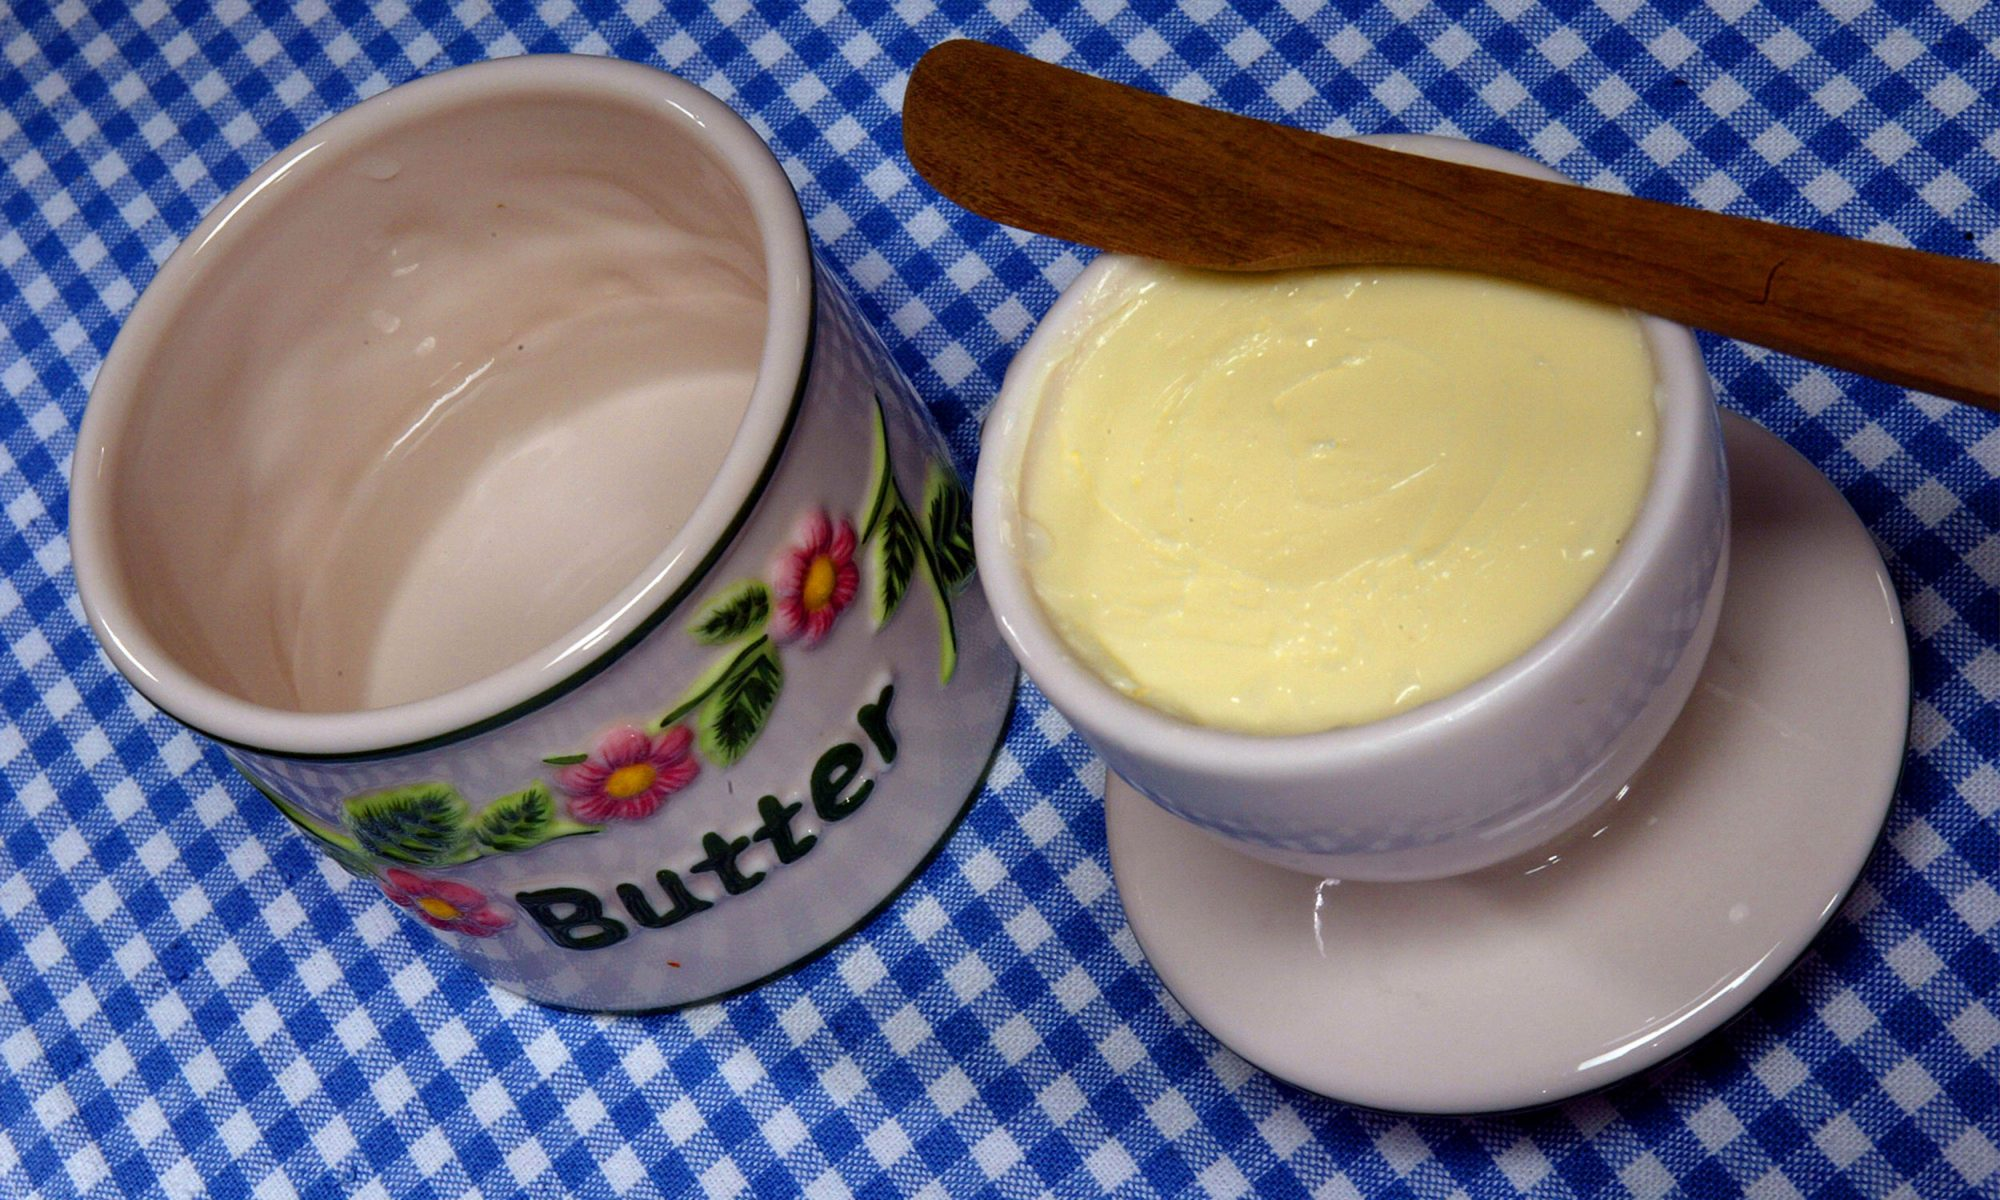 EC: A Butter Keeper Makes Everything Better